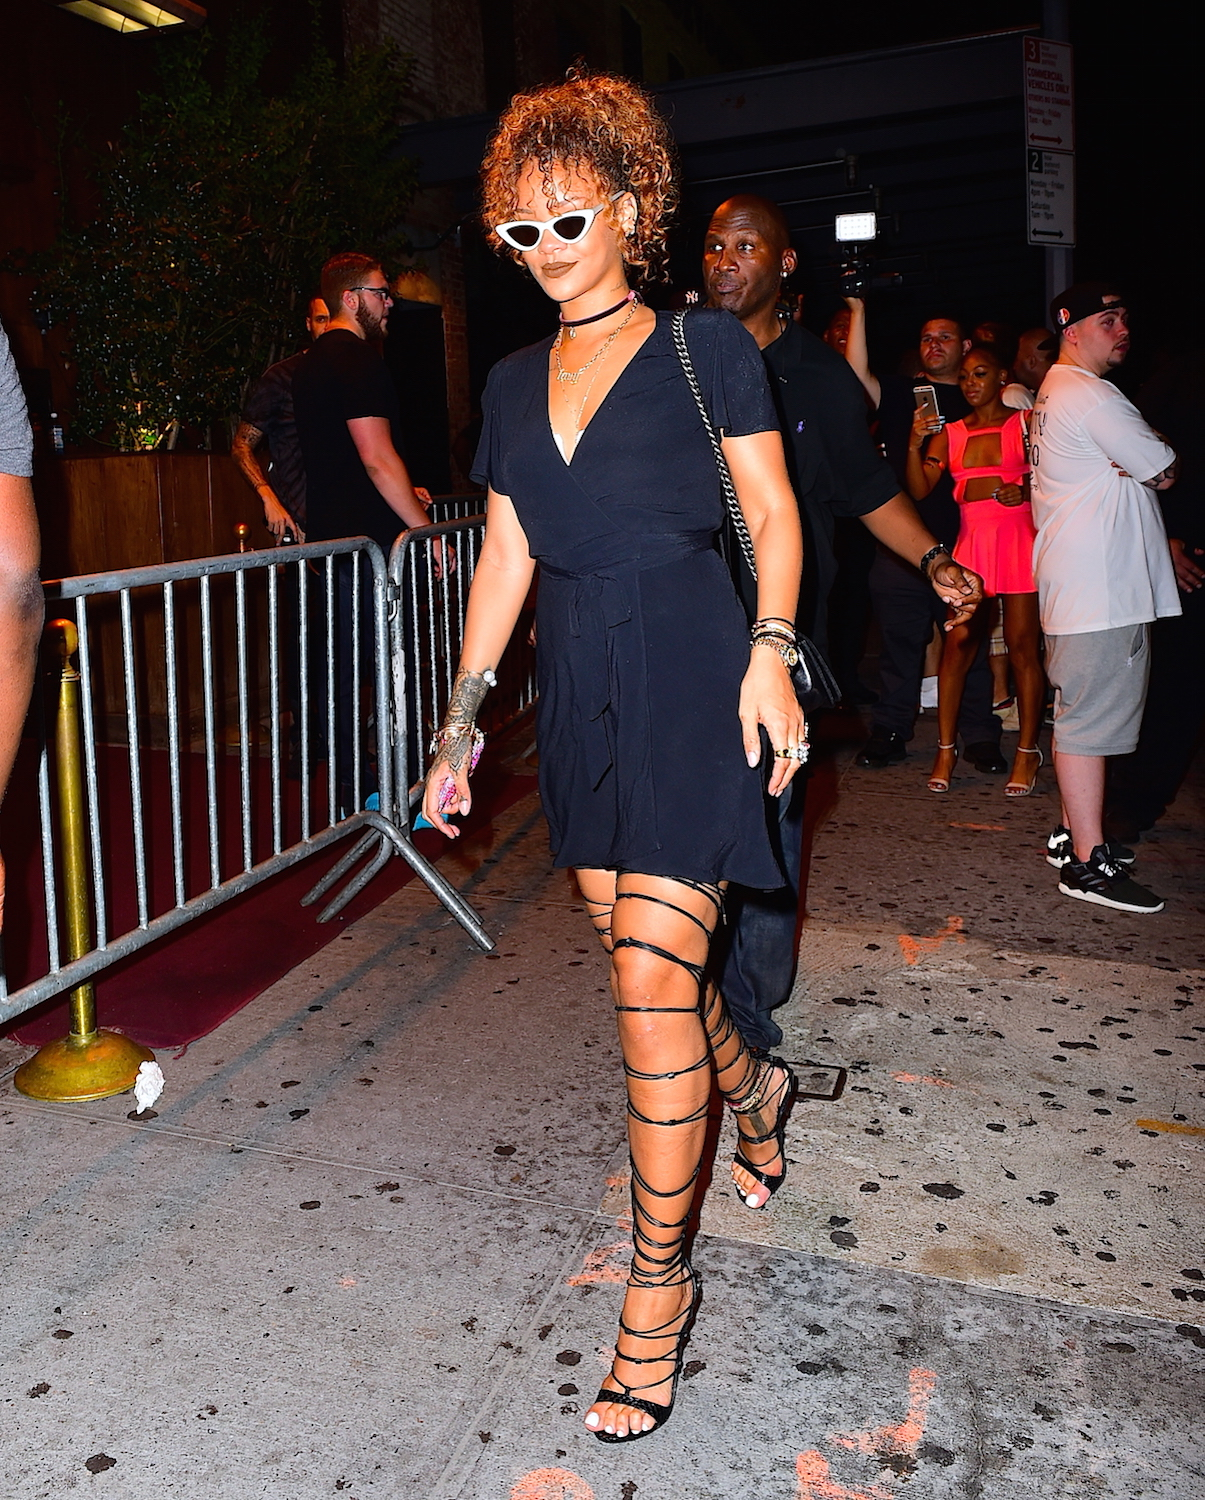 Rihanna and Travis Scott Dine Together at the Spotted Pig in NYC after His Concert